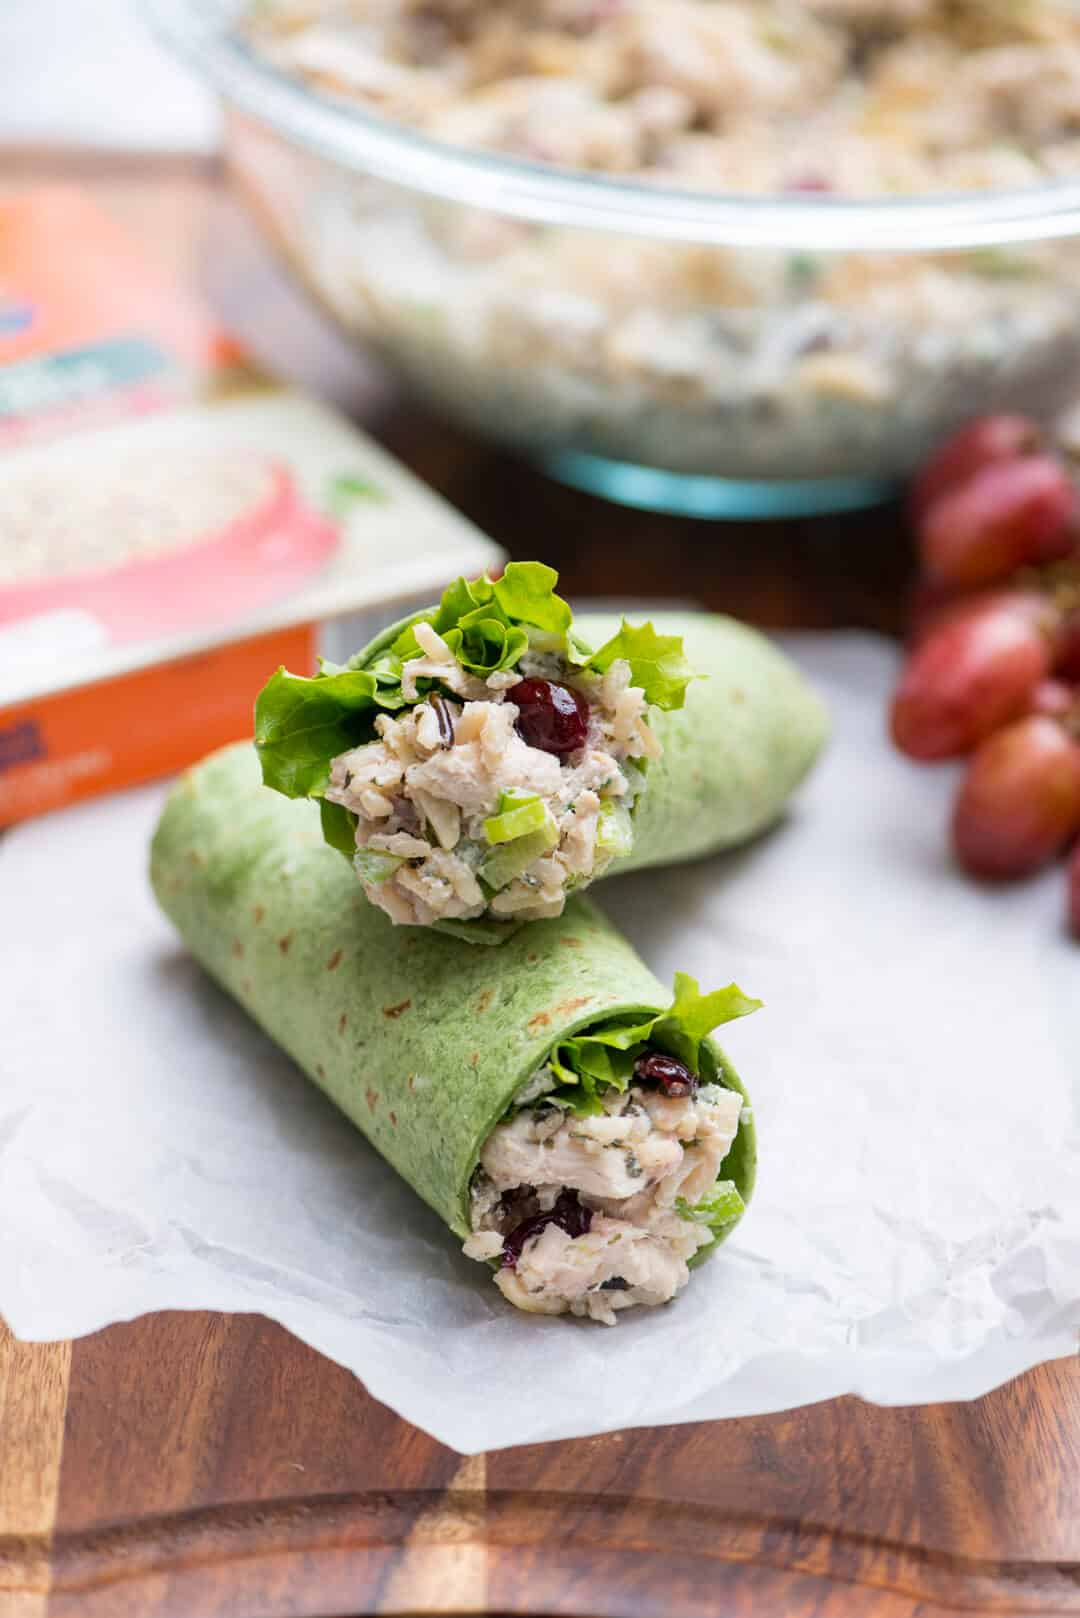 Long Grain and Wild Rice Chicken Salad made with Uncle Ben's is creamy, crunchy, and delicious. Try it rolled up into a wrap or all in its own!